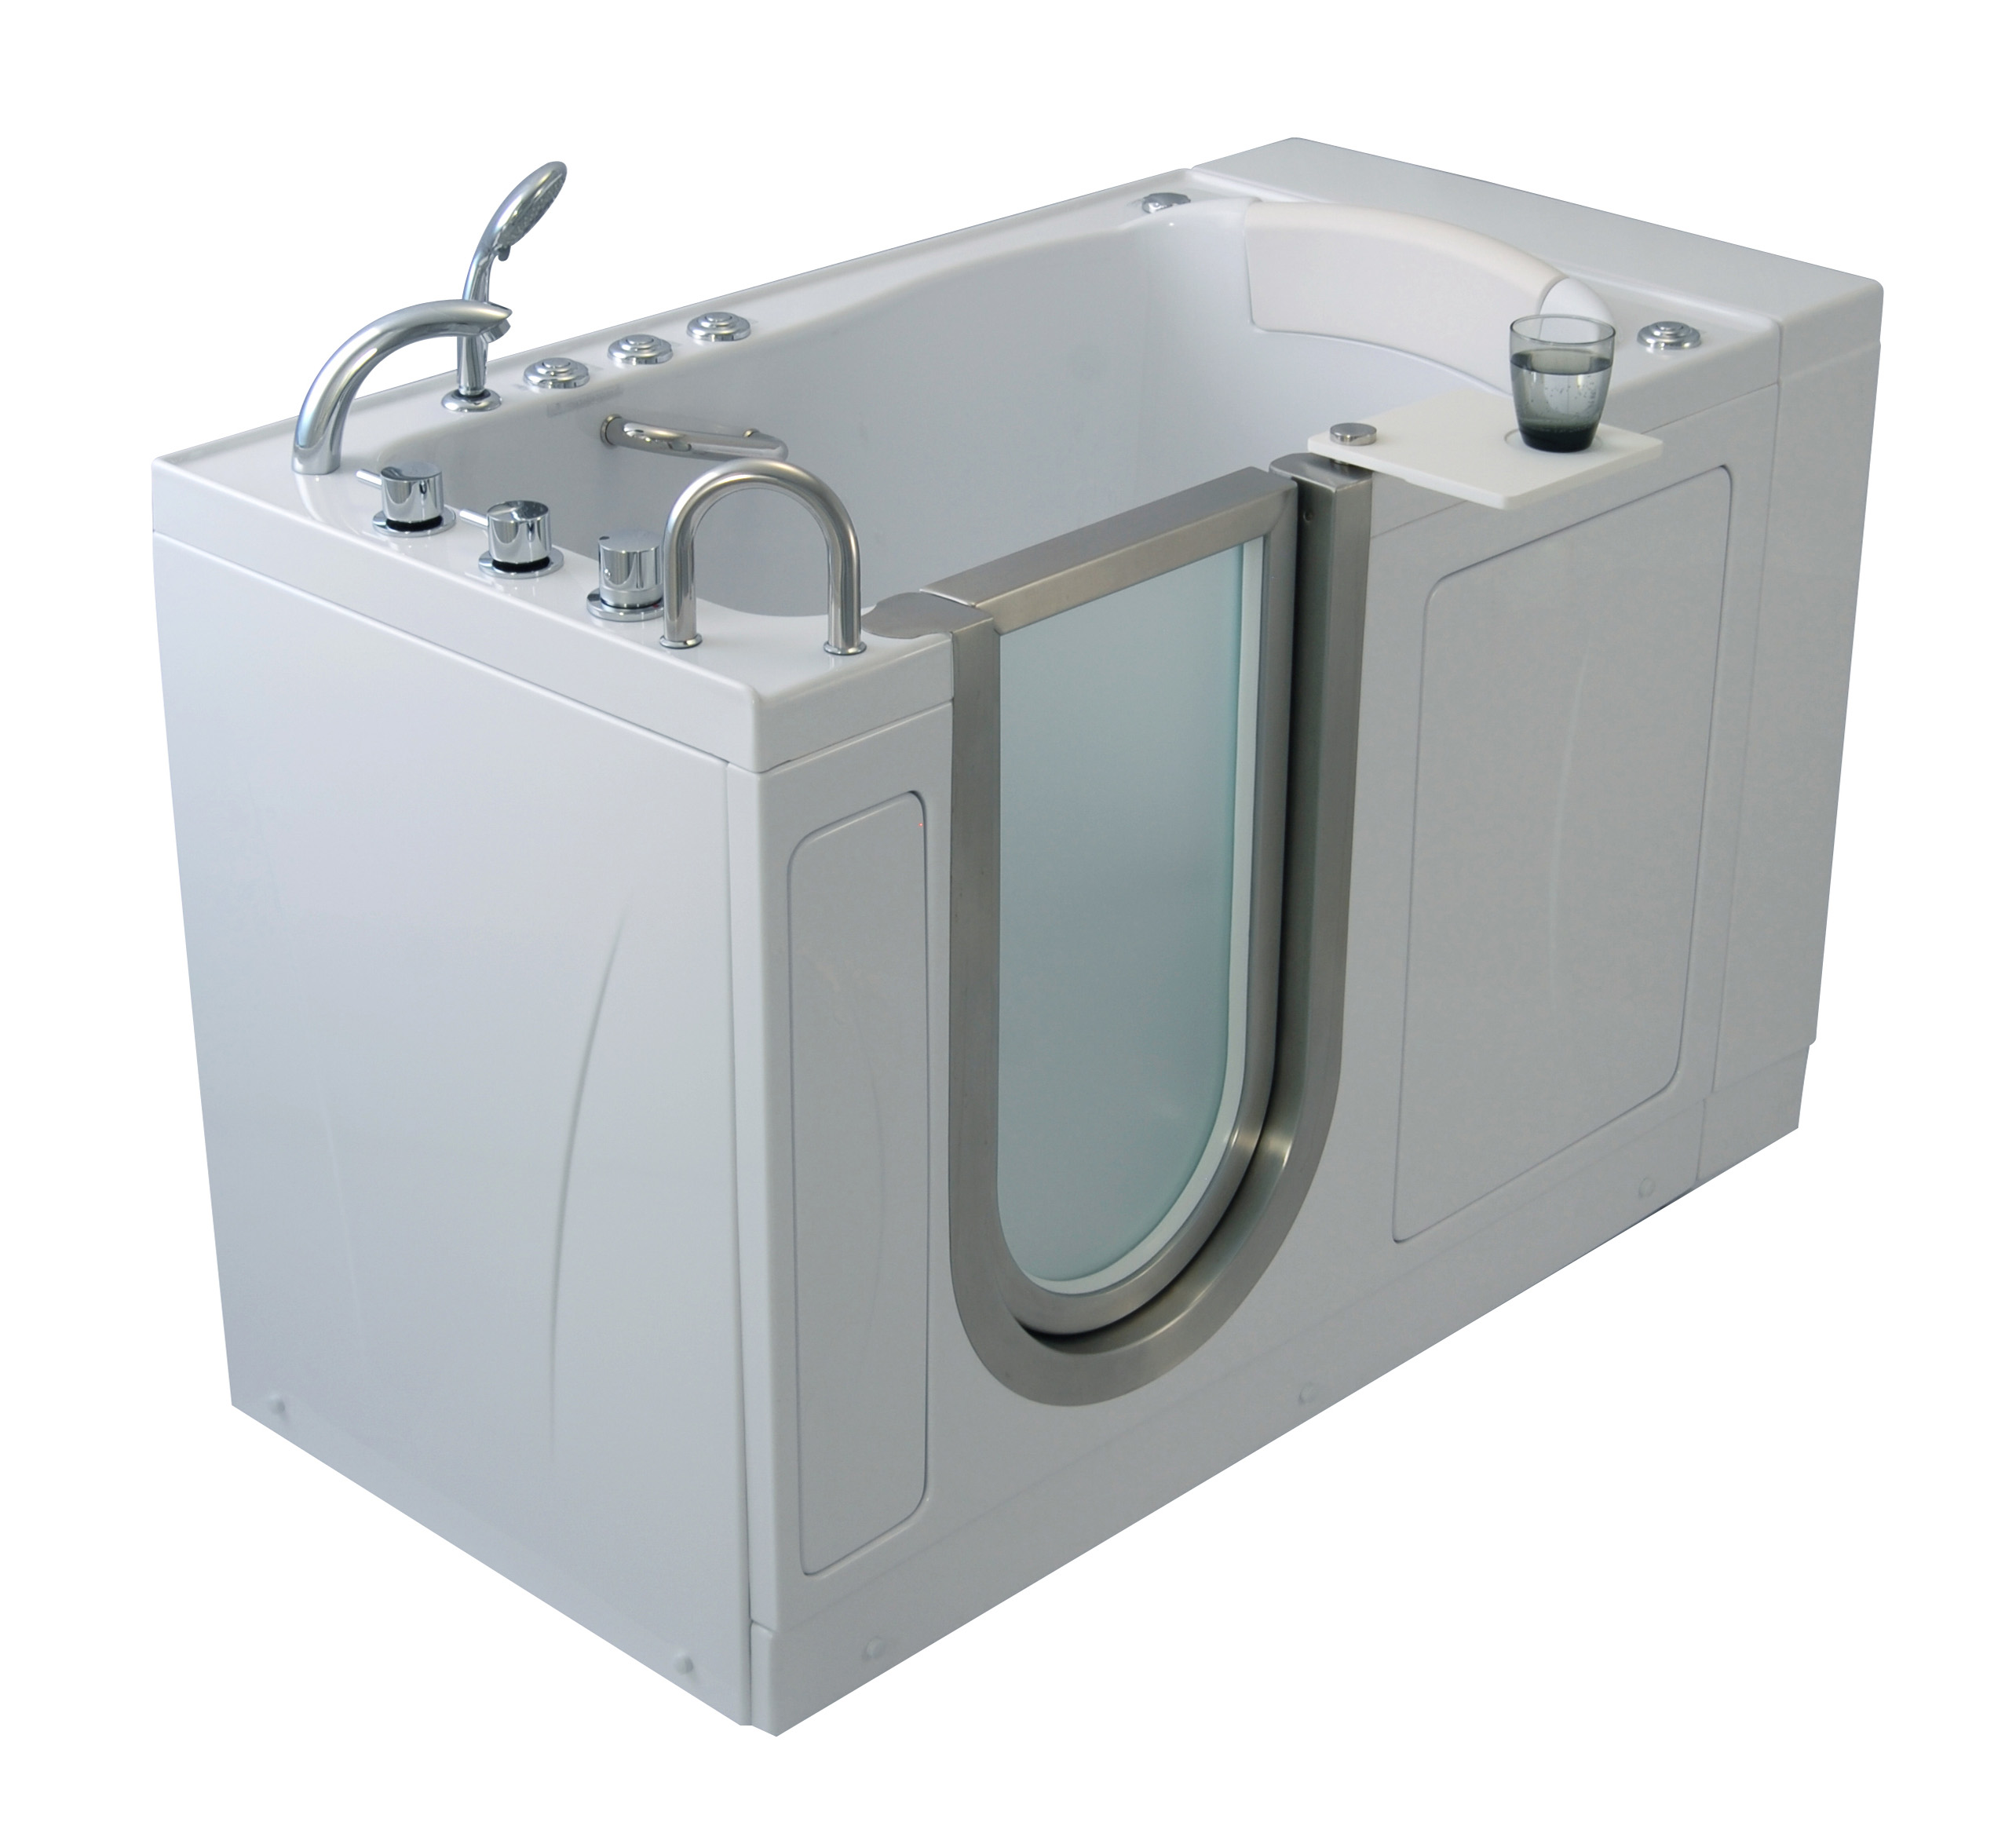 A Useful Online Walk in Bathtubs And ADA Shower Stall Ecommerce Store Announces a Hydrotherapy